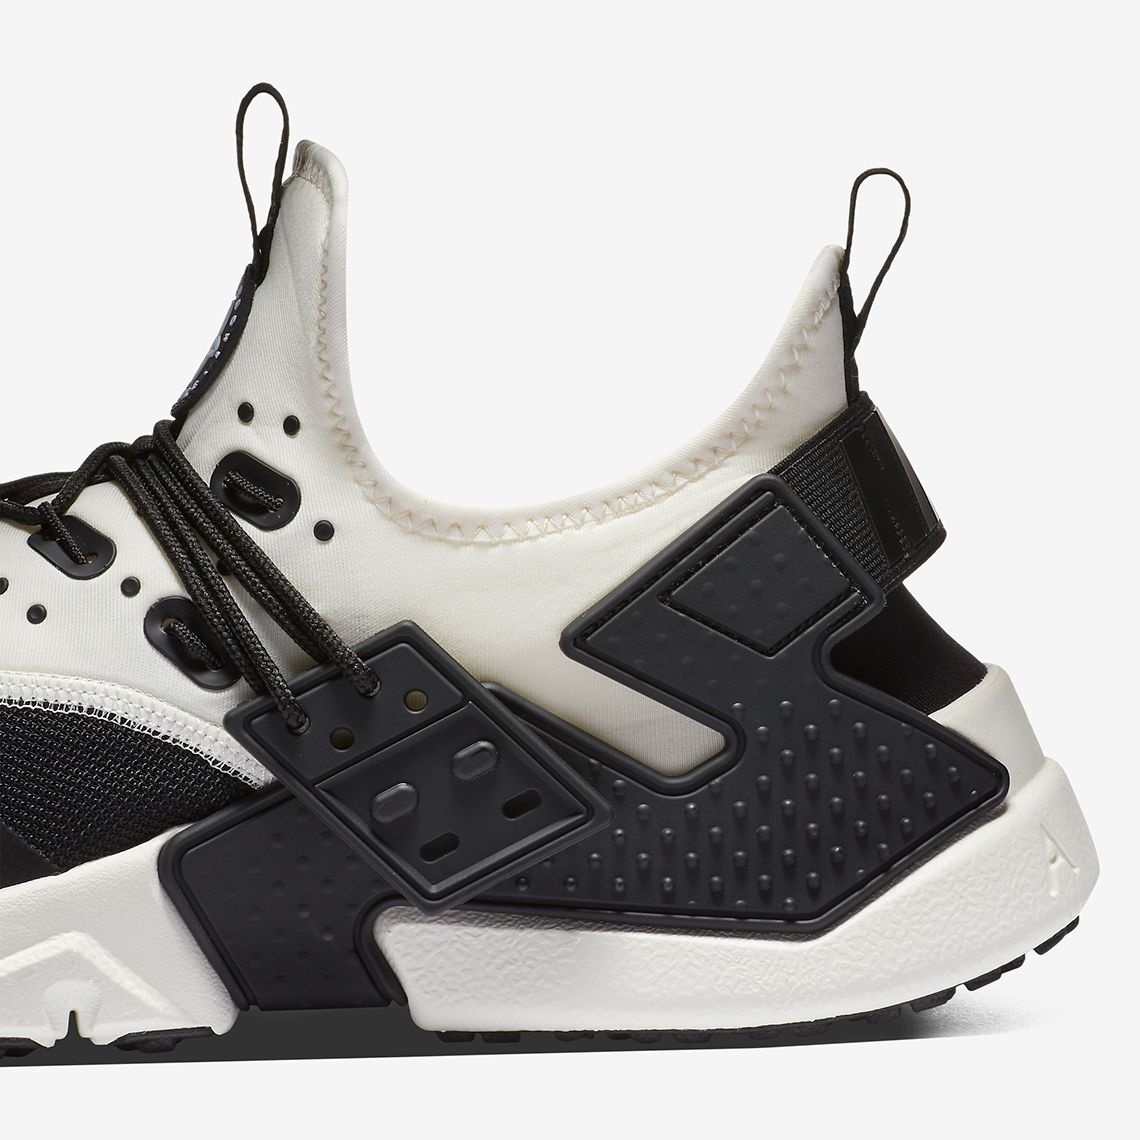 promo code 4c901 010d1 Nike Air Huarache Drift Customizable   SneakerNews.com